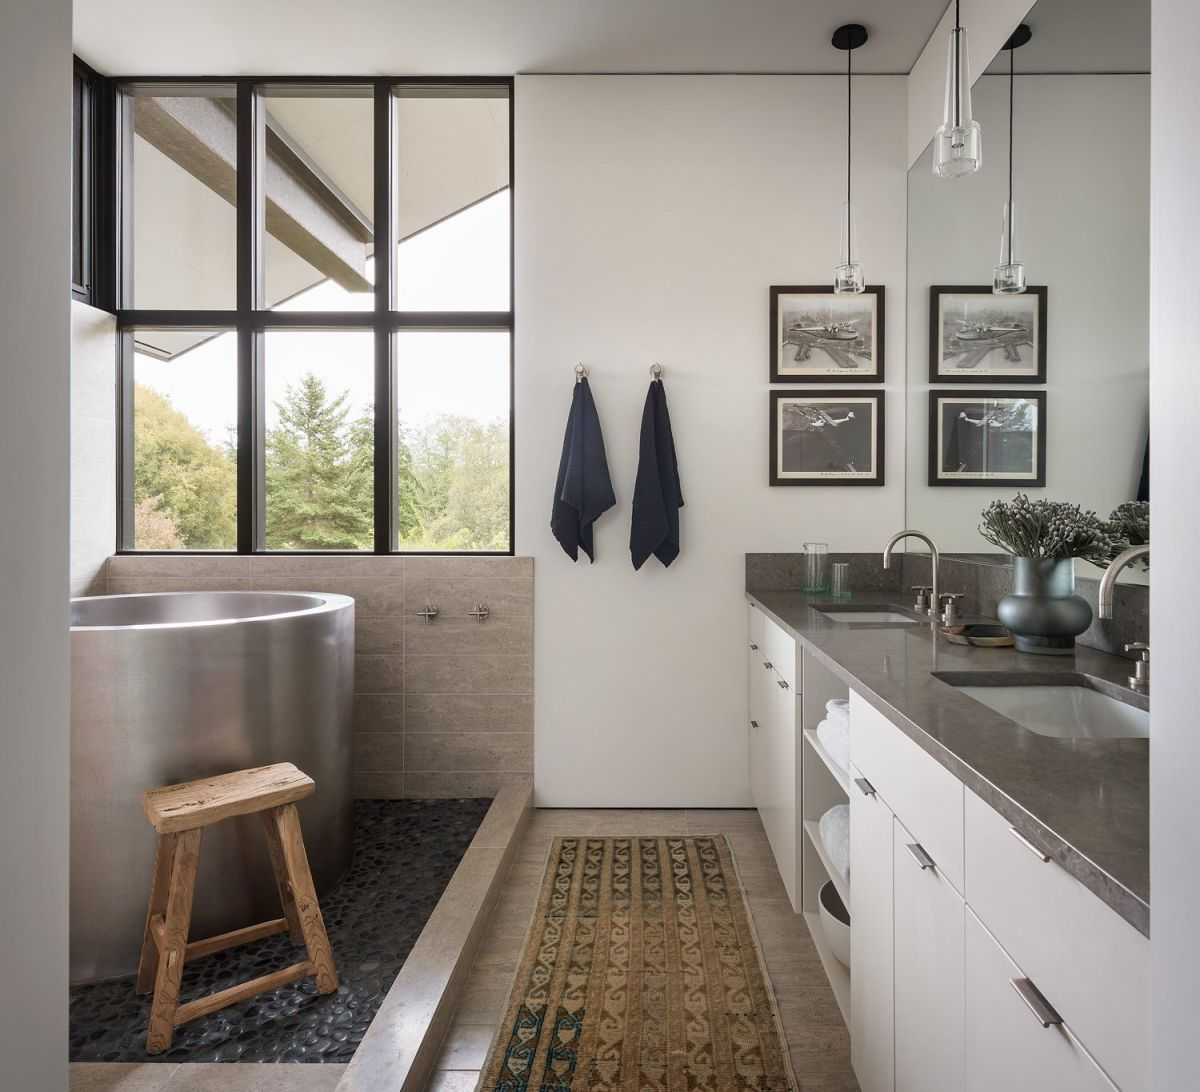 A soak tub is placed next to the window to enjoy the views